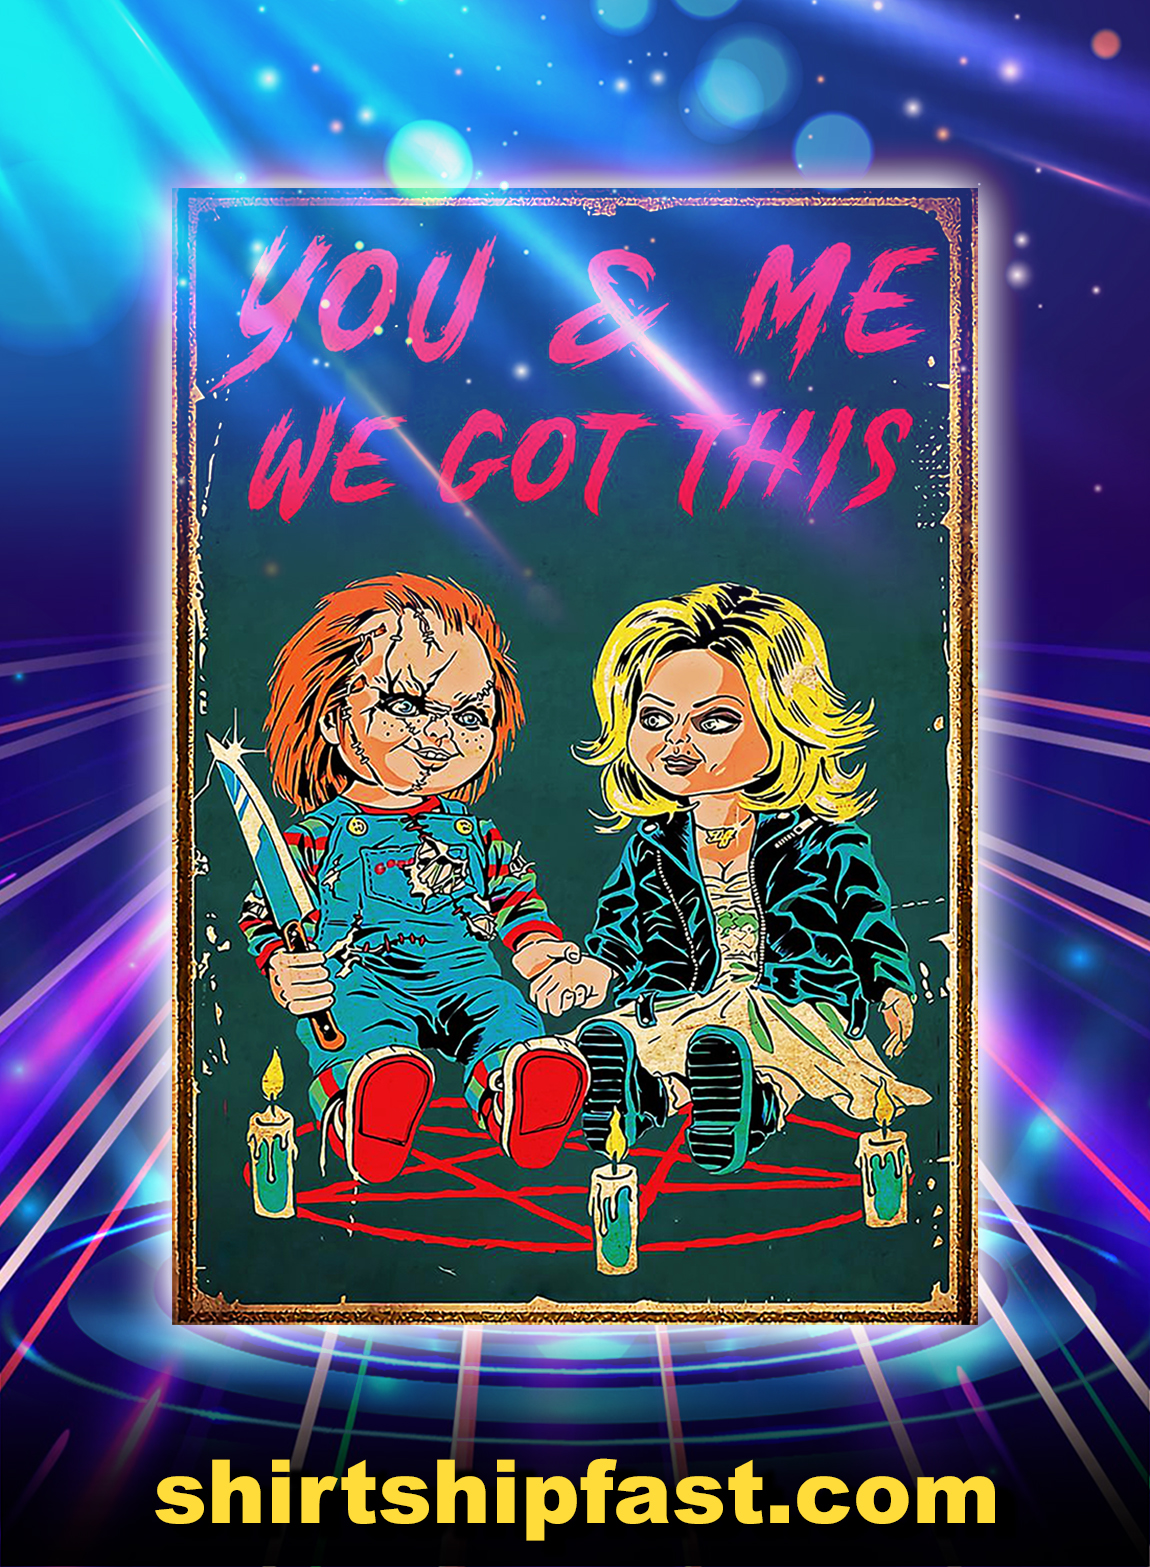 Bride of chucky you and me we got this poster - A3